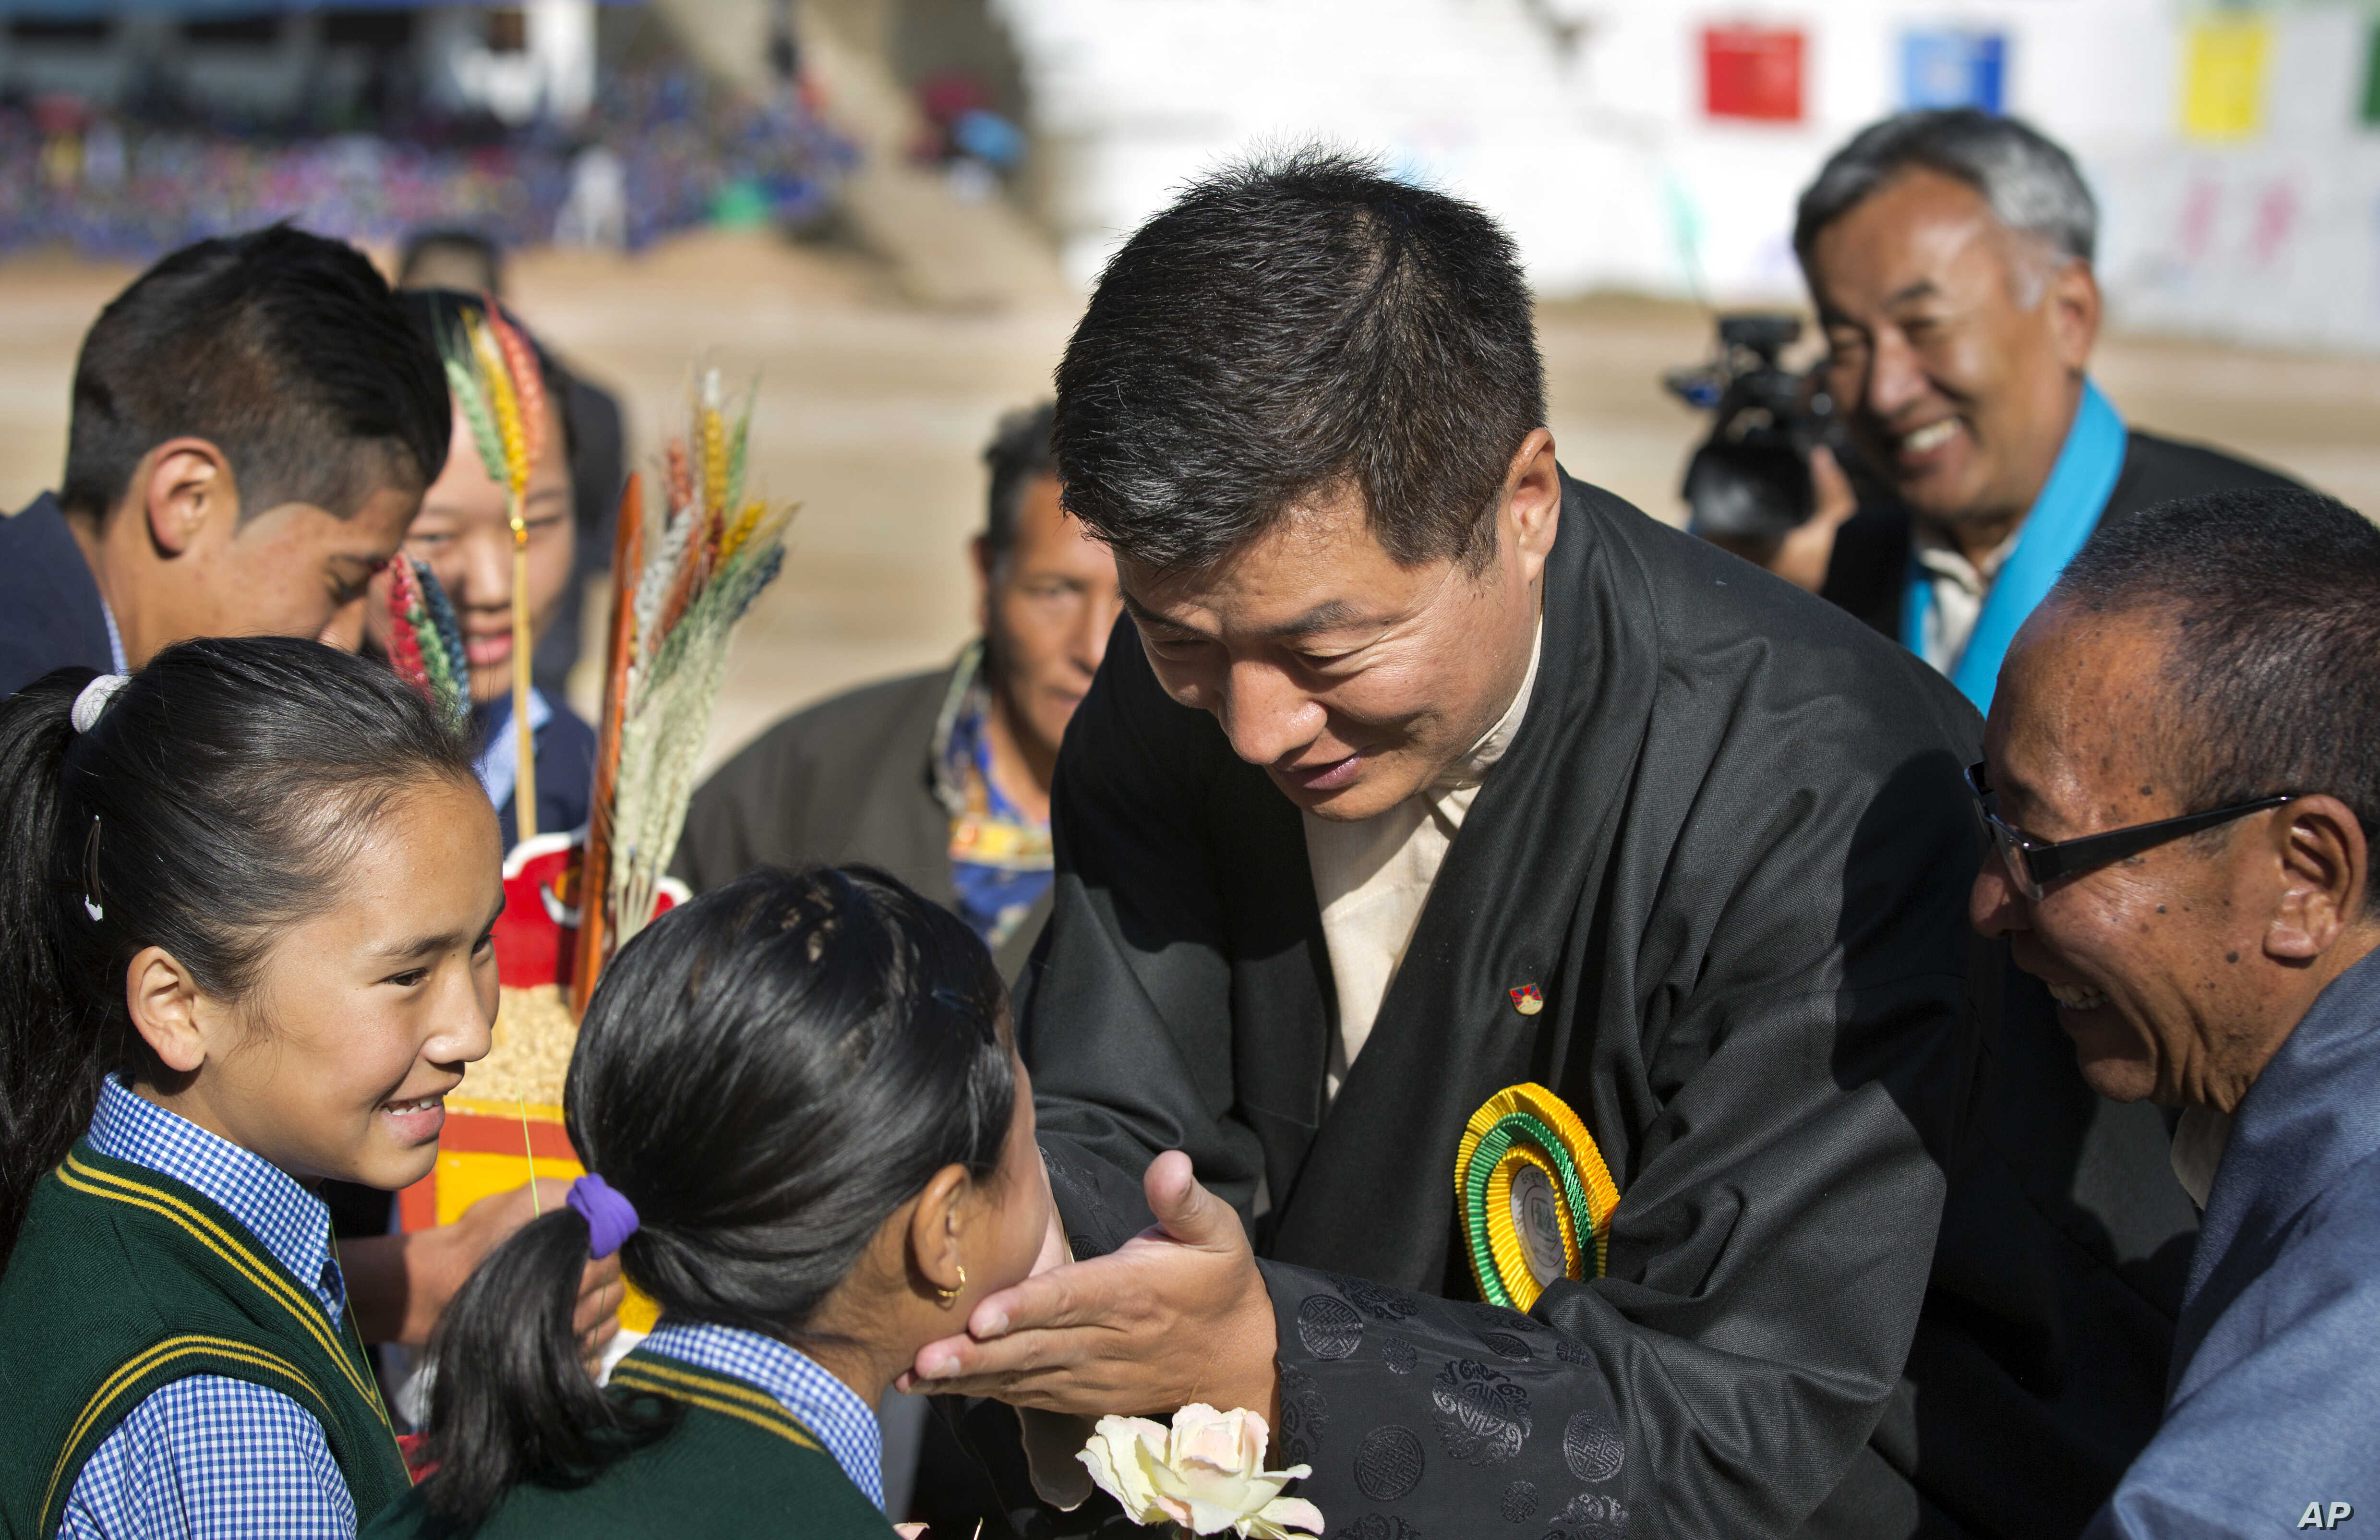 FILE - President of the Tibetan administration in exile Lobsang Sangay, center, greets a child as he arrives to attend the founding anniversary celebrations at the Tibetan Children's Village School in Dharmsala, India, Oct. 23, 2017.